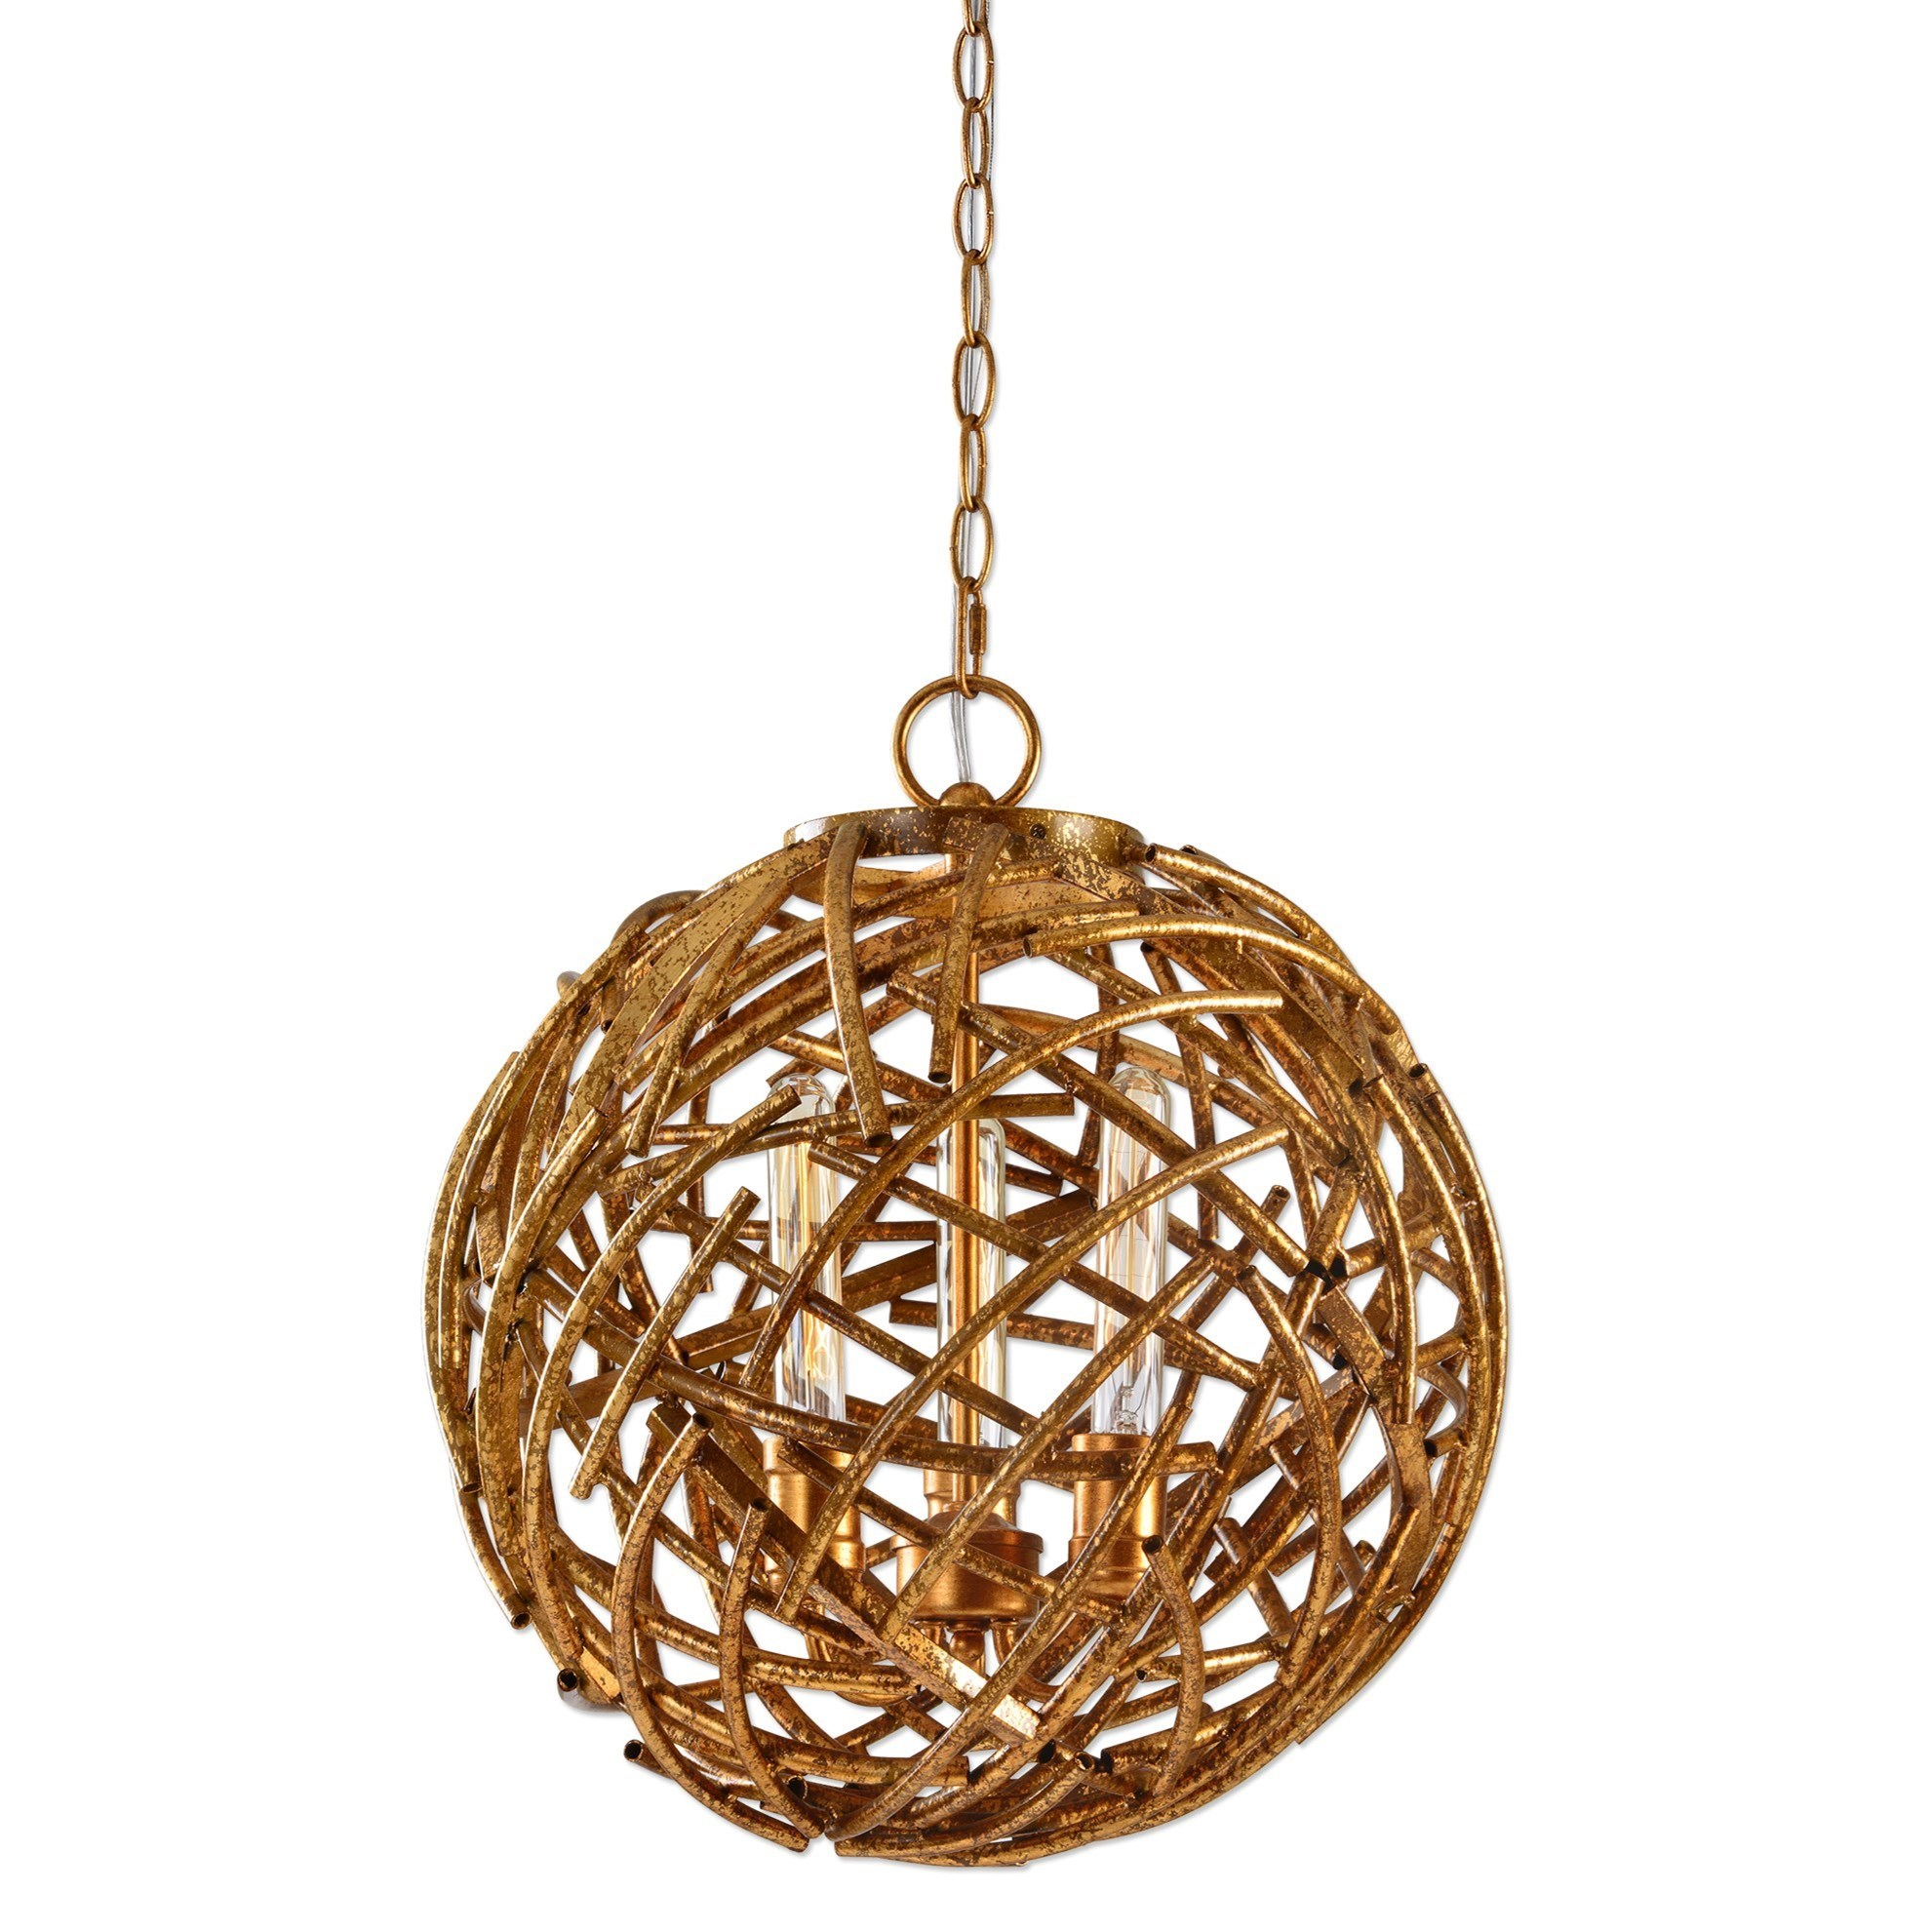 Uttermost Lighting Fixtures Sphera 3 Light Gold Pendant - Item Number: 22090